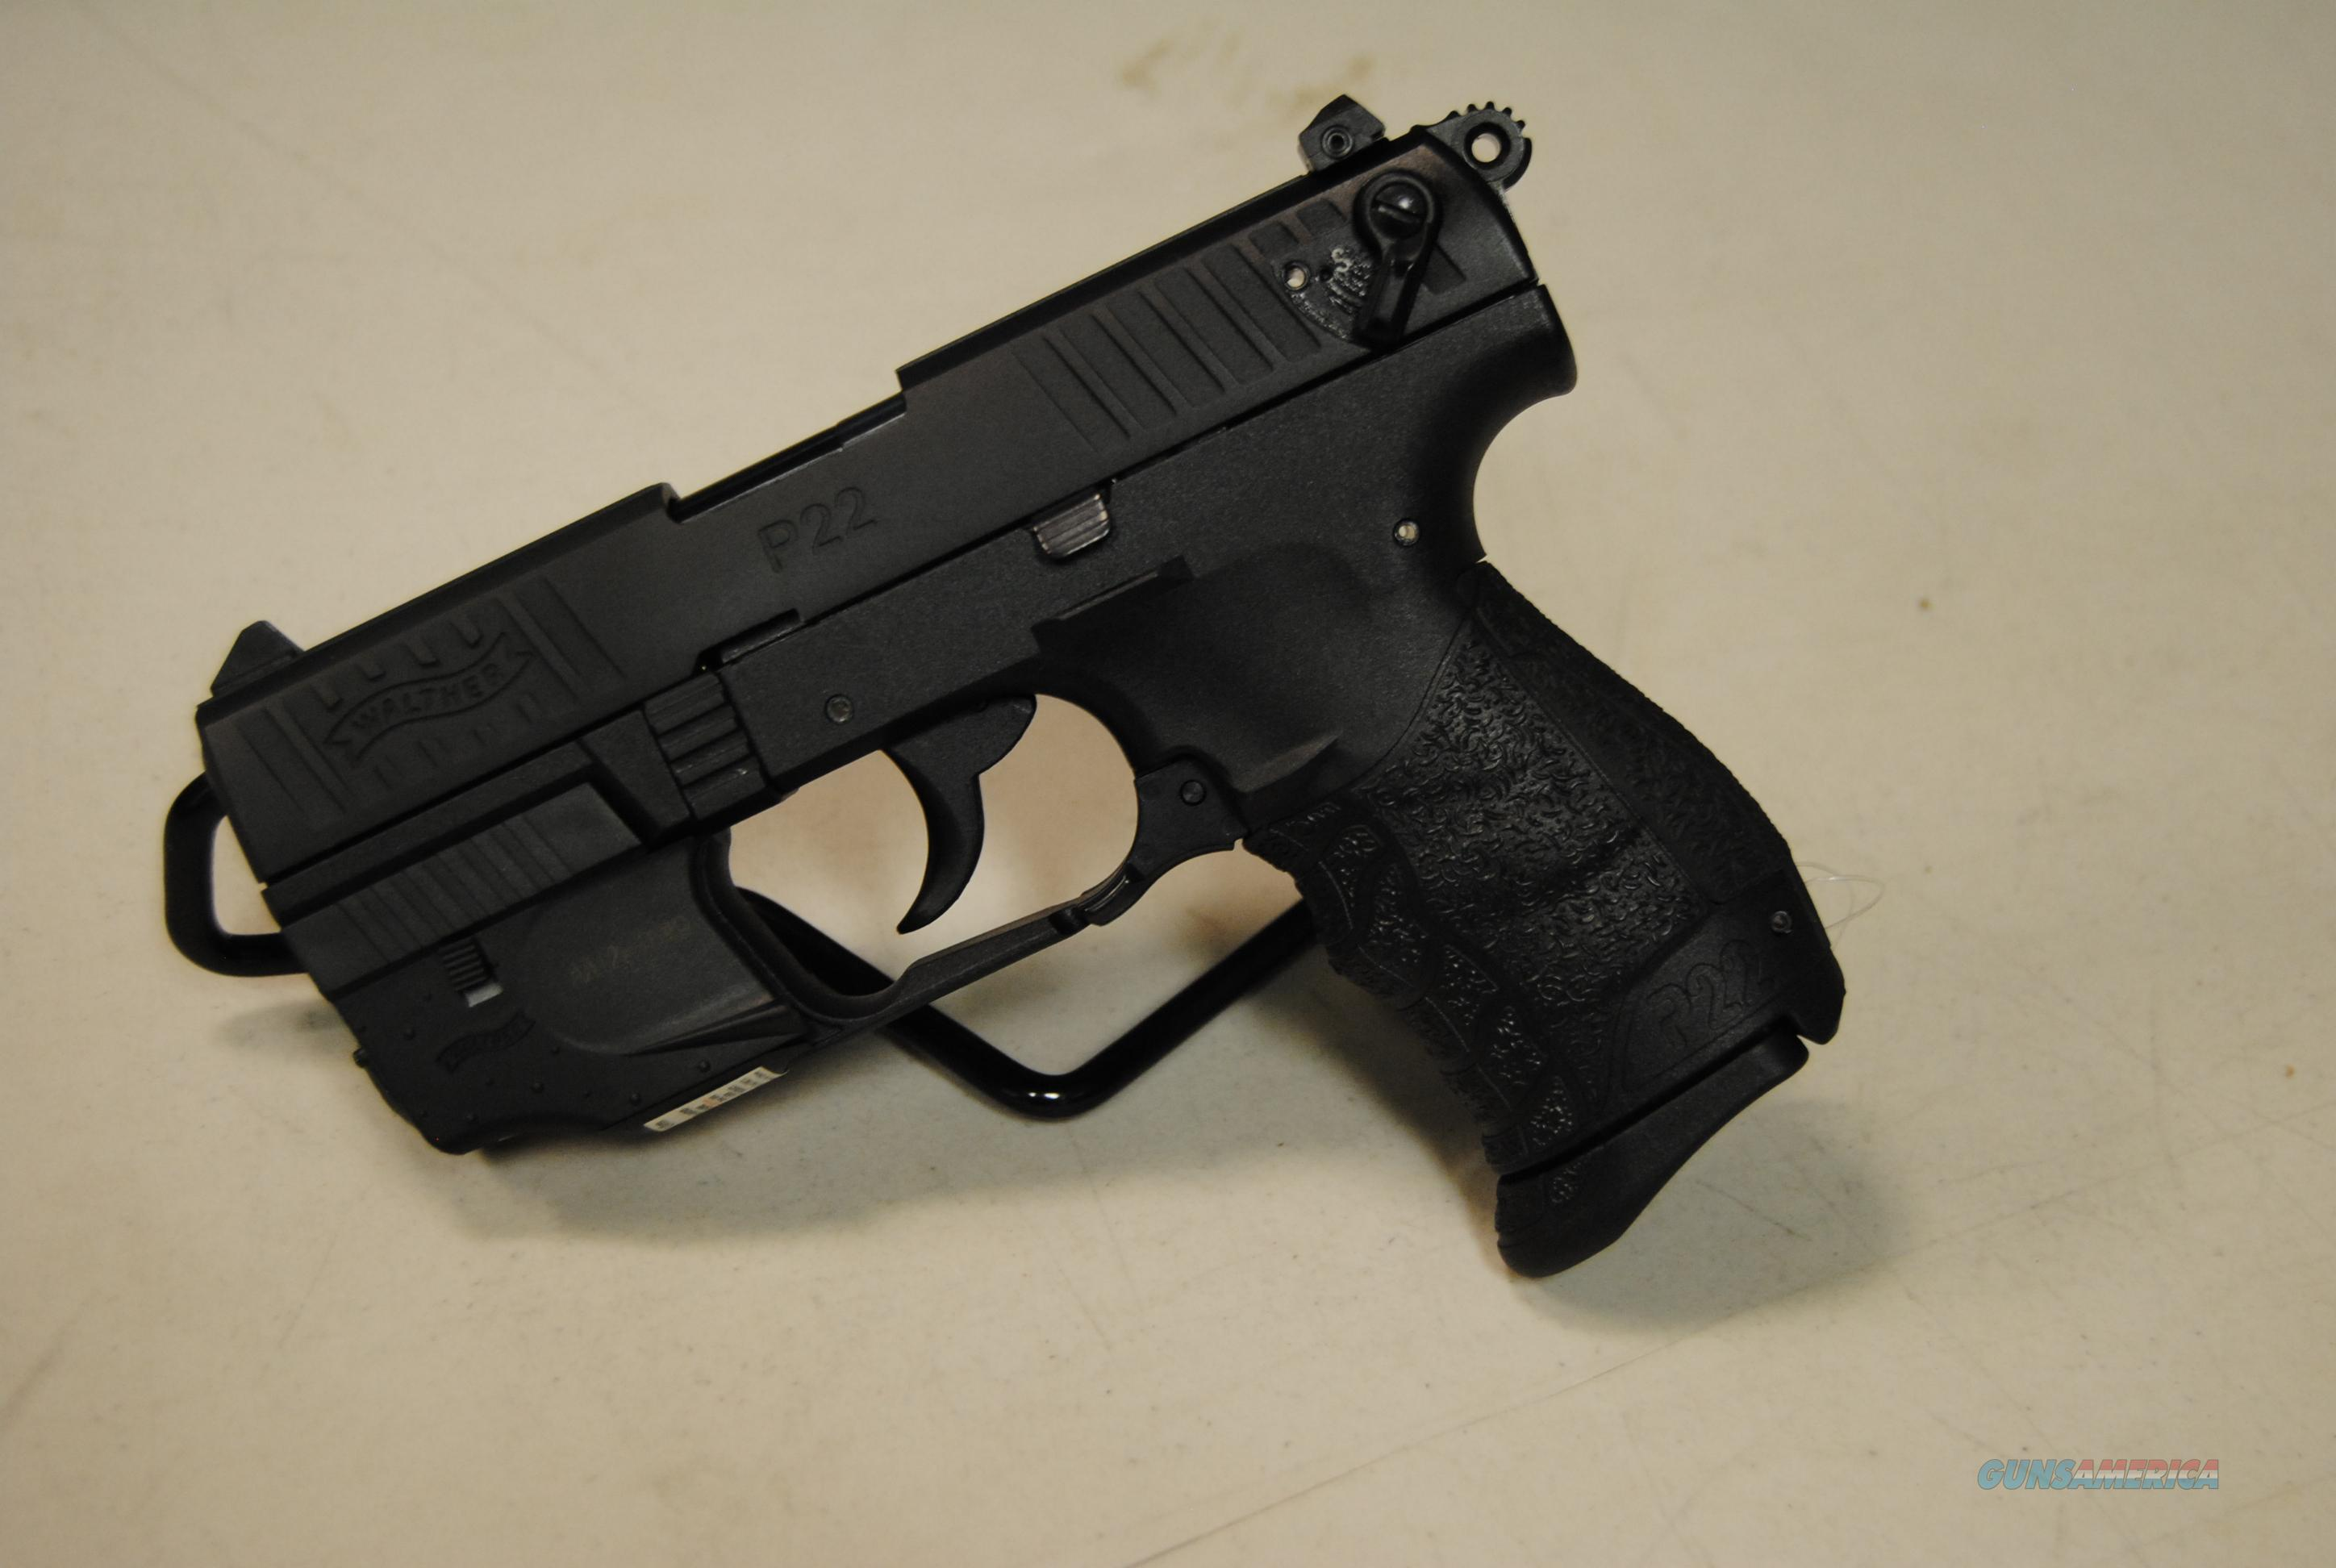 Walther P22 Black W/ Laser 22lr  Guns > Pistols > Walther Pistols > Post WWII > P22